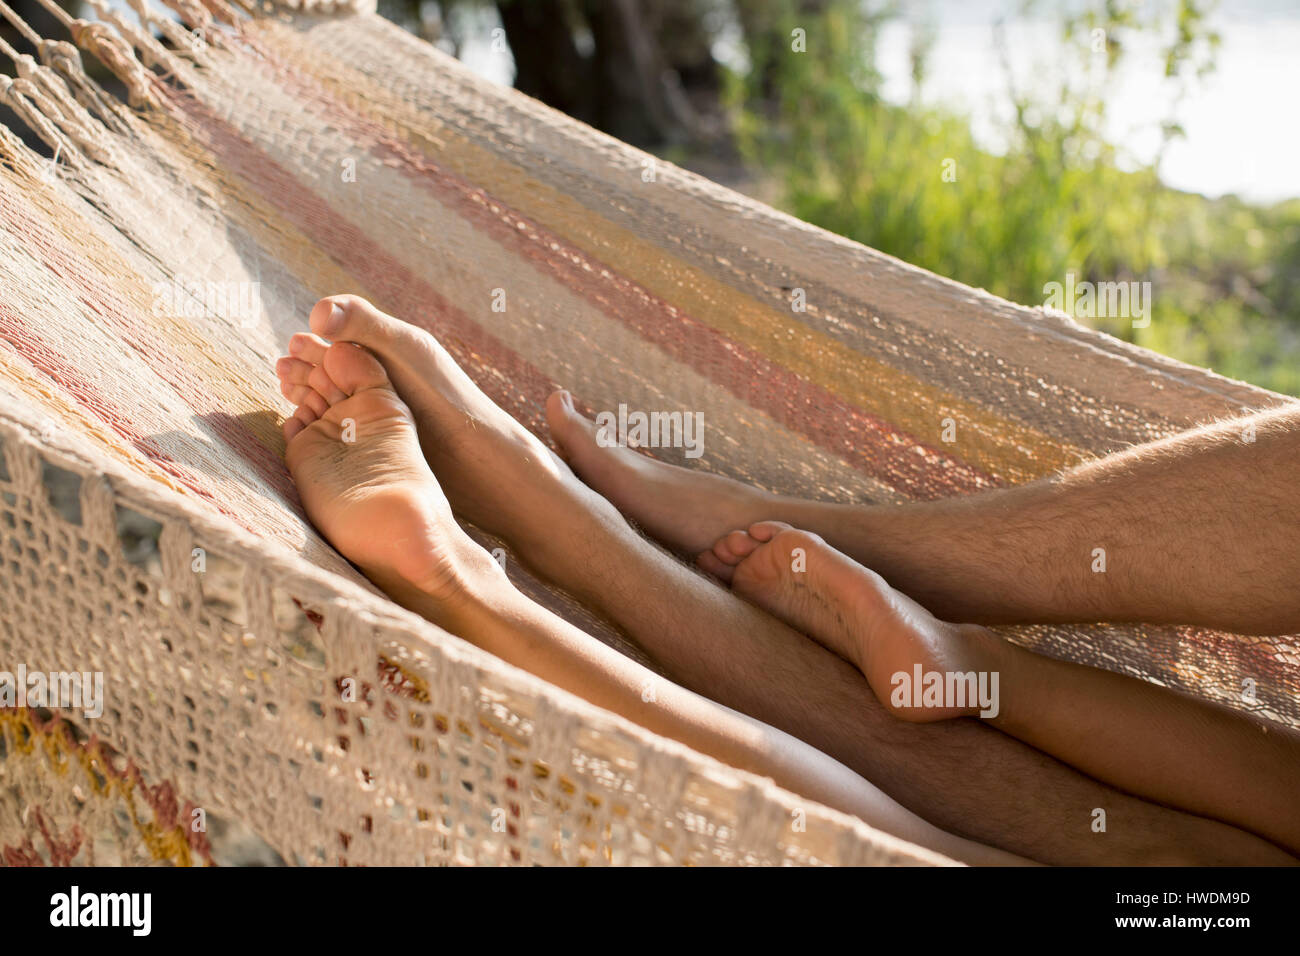 Couple relaxing in hammock, view of legs - Stock Image